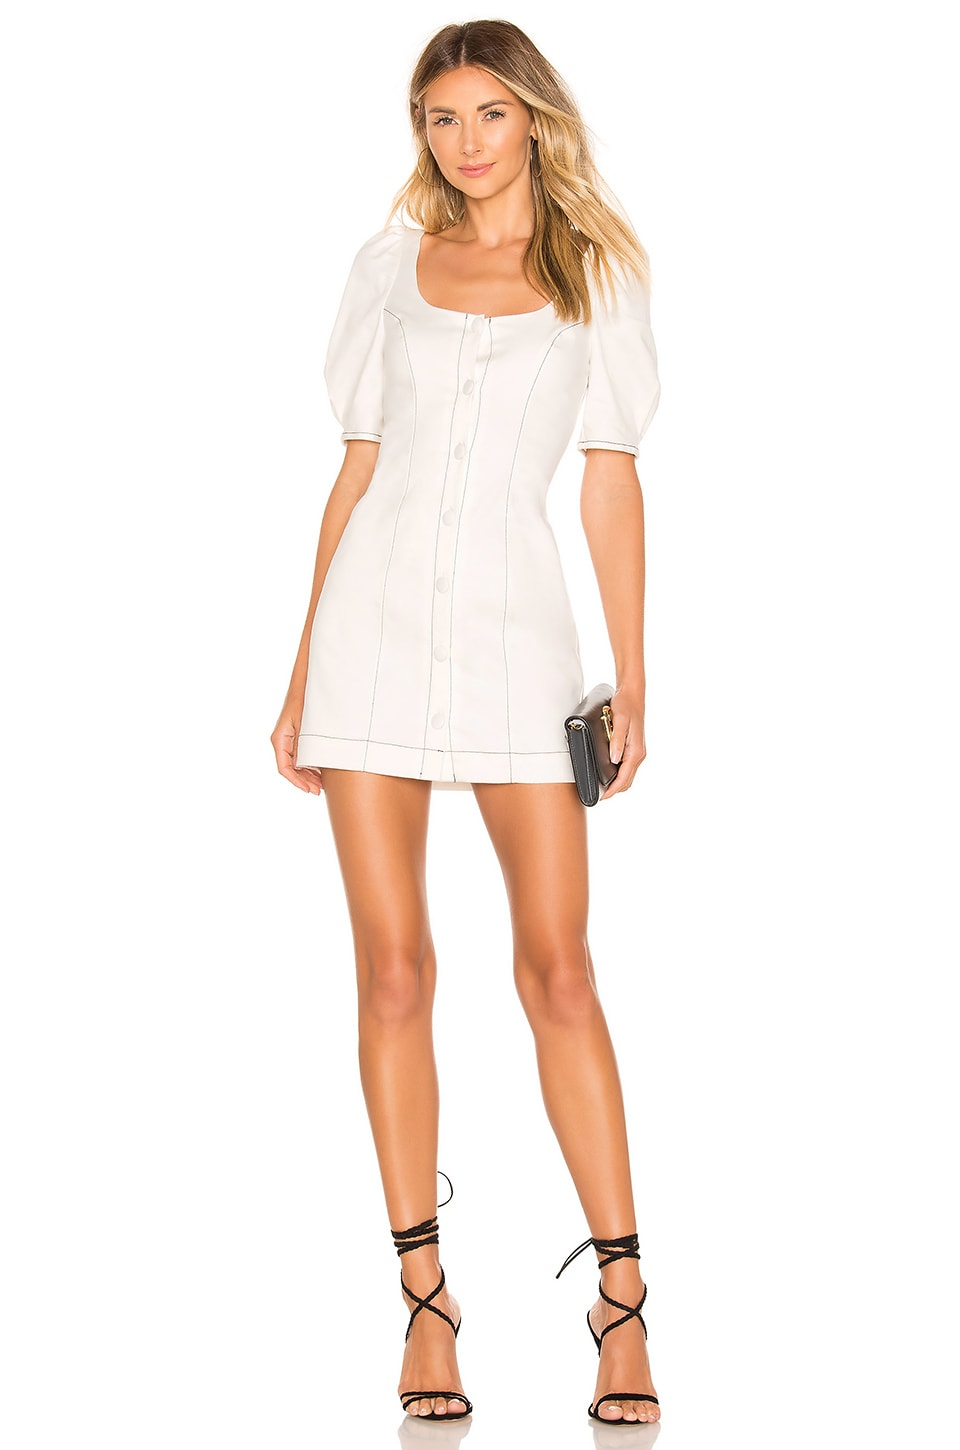 Lovers + Friends Josie Mini Dress in Ivory